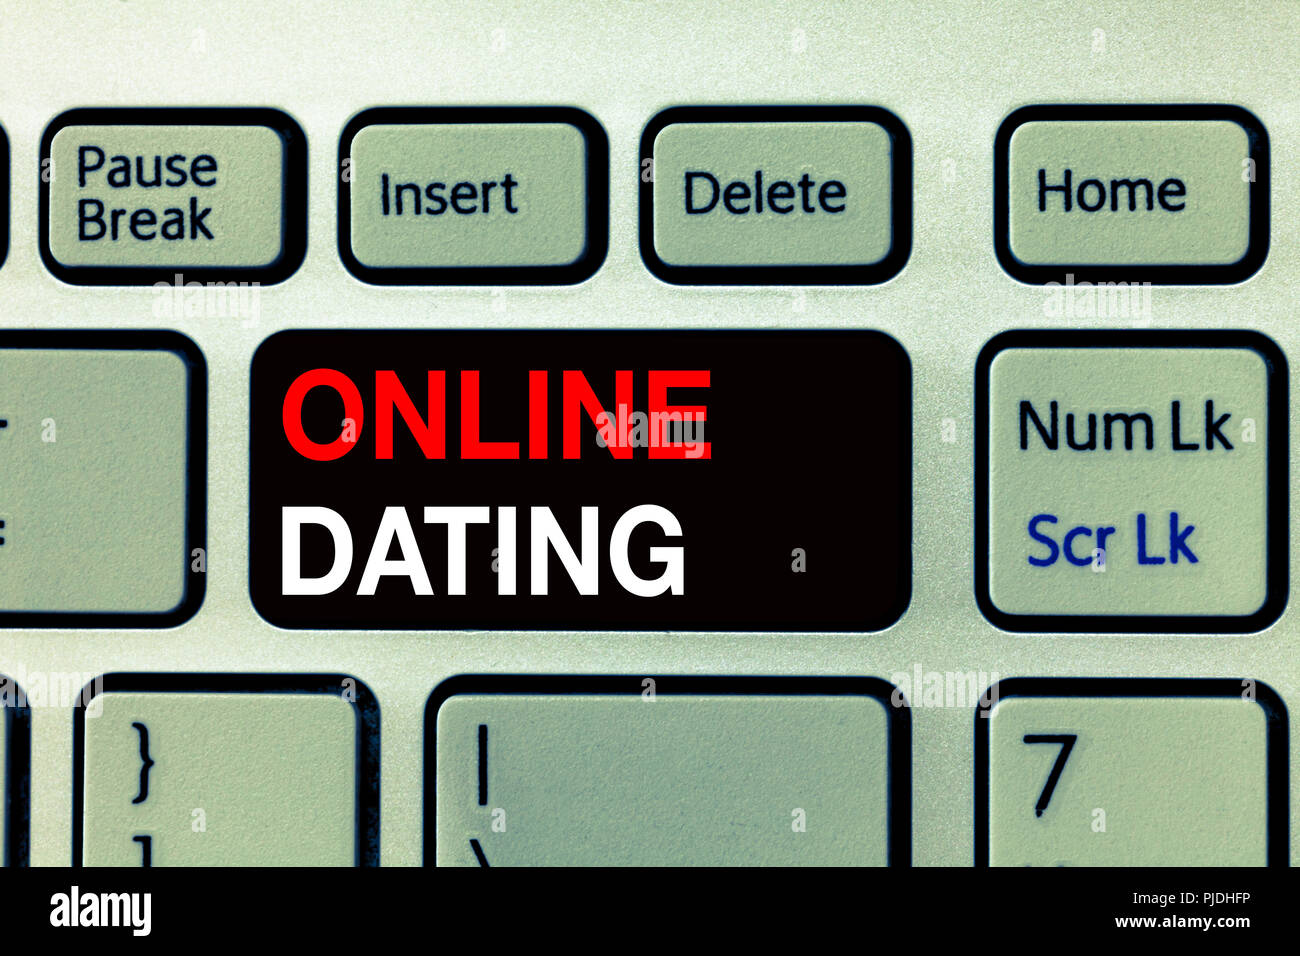 We are free dating website, with most dating members from UK & US looking for speed dating.